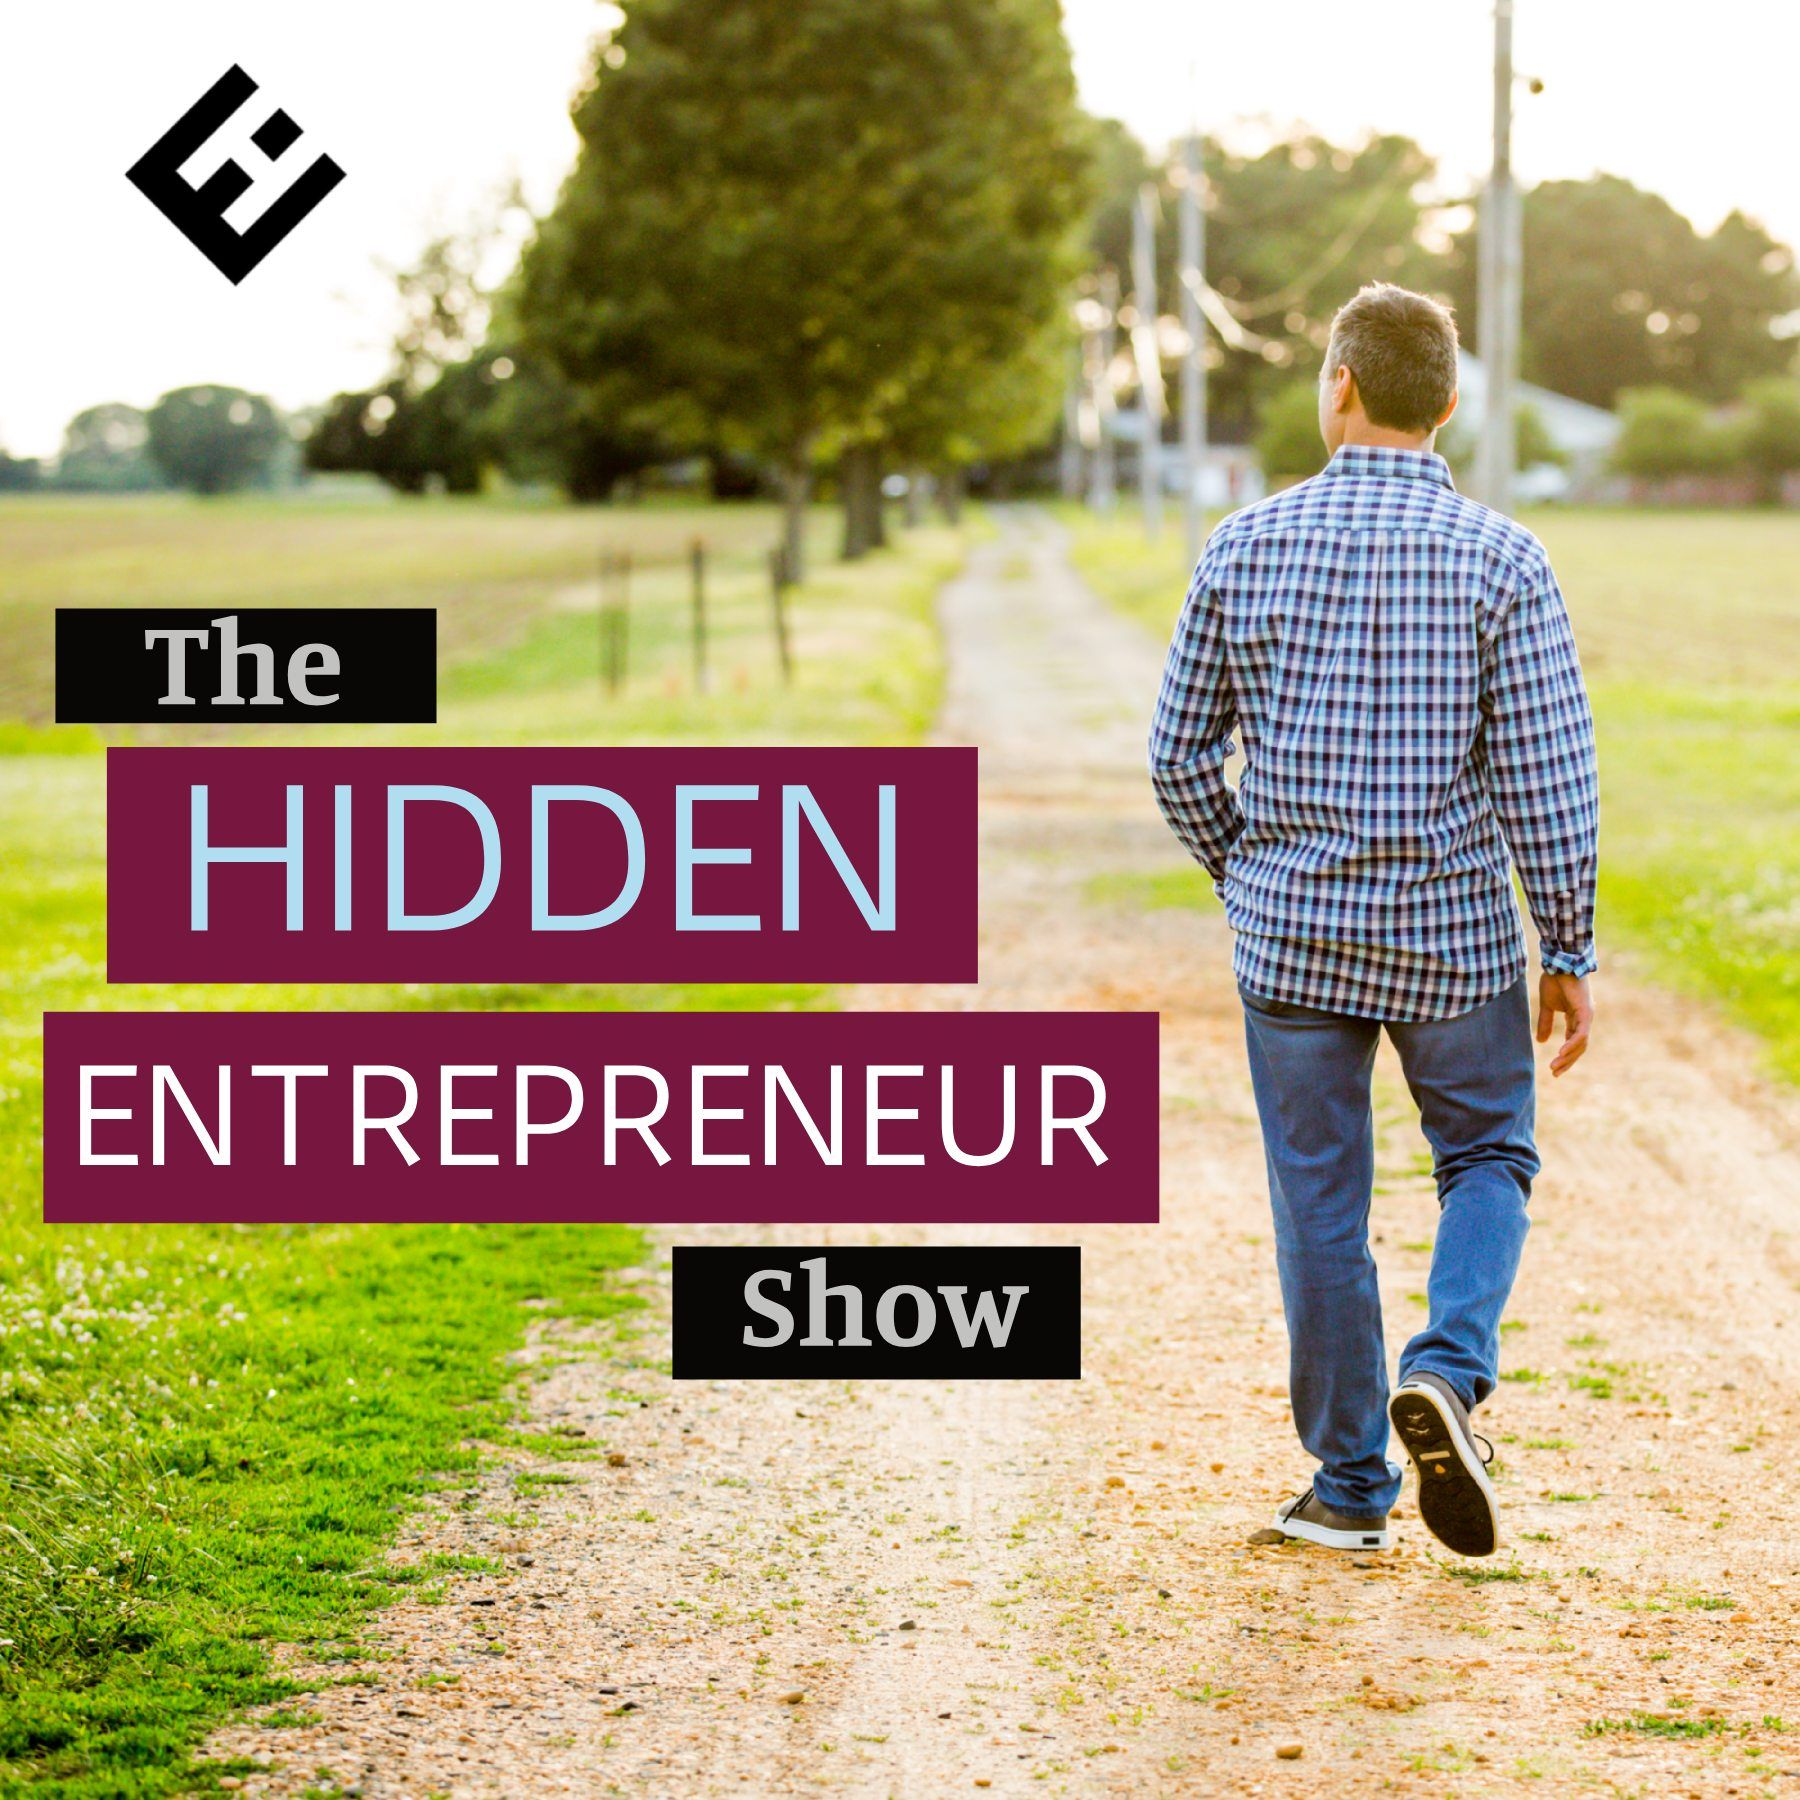 Artwork for podcast The Hidden Entrepreneur Show with Josh Cary